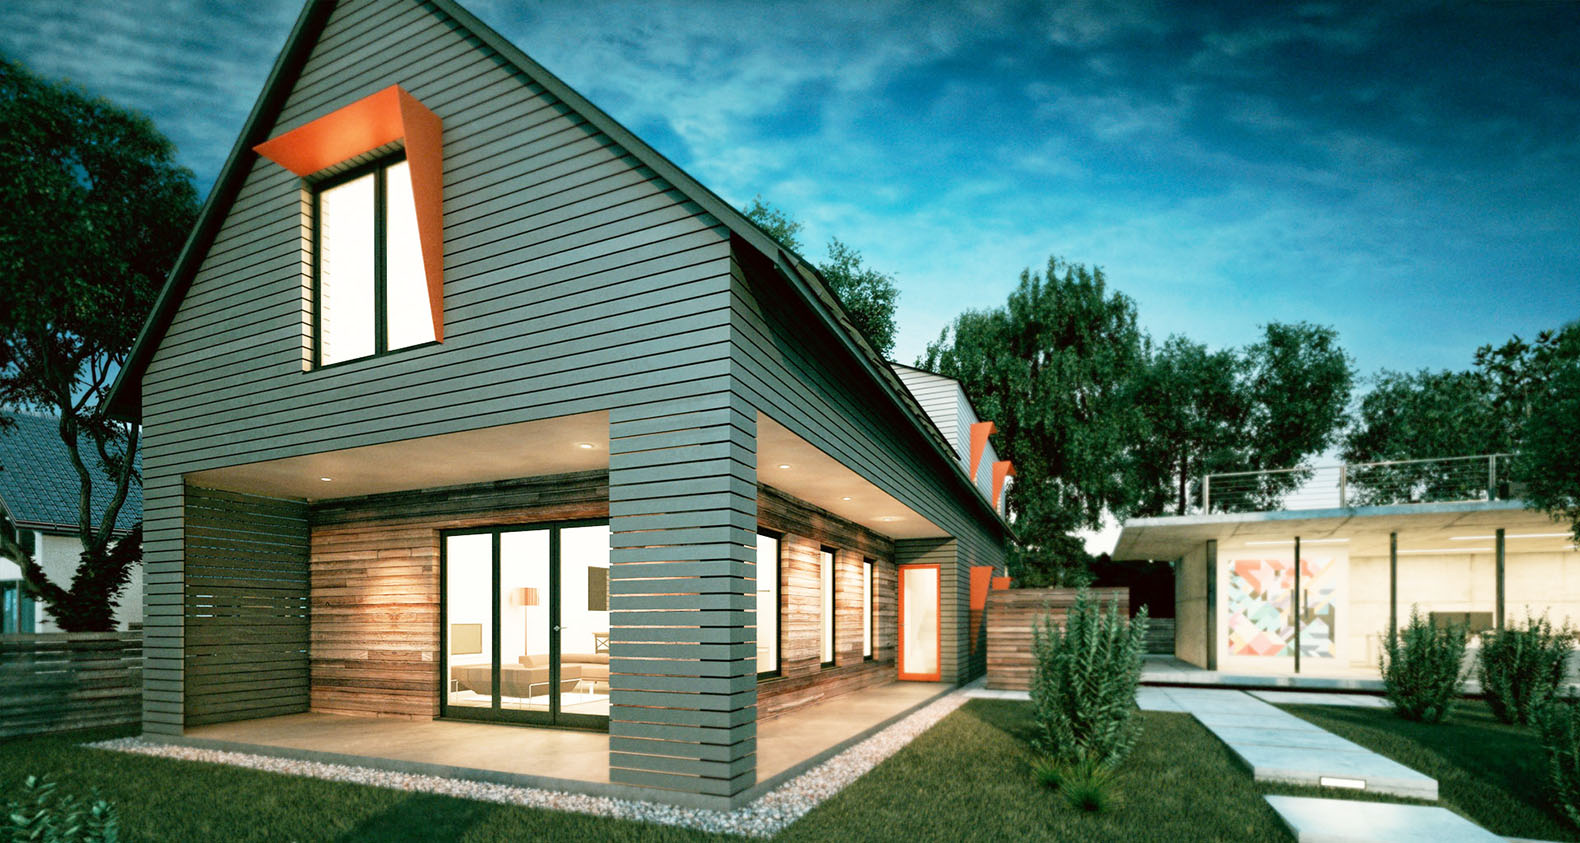 Net zero house inhabitat green design innovation for Zero house plans